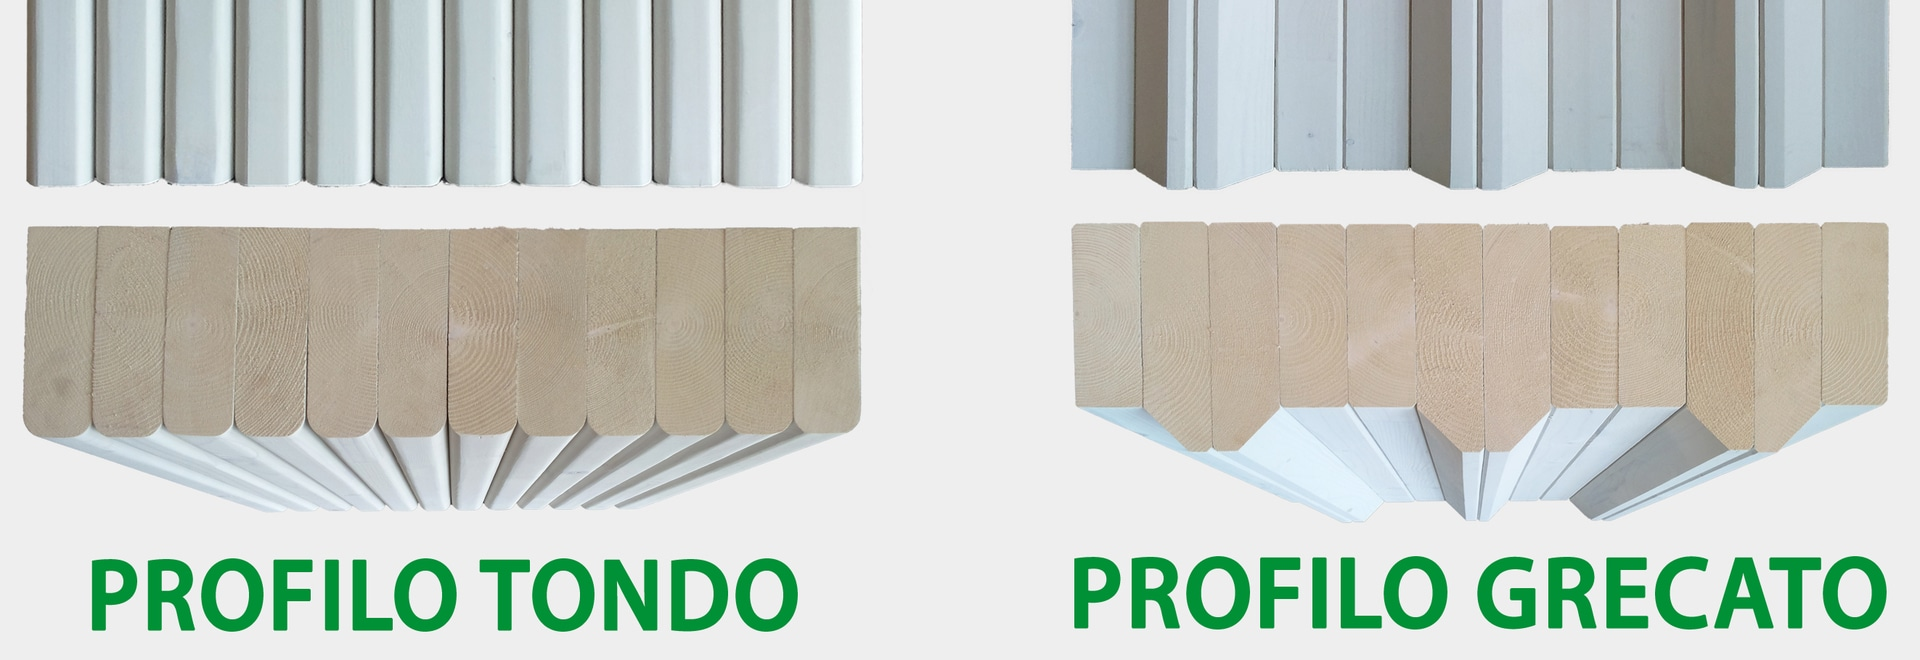 New Tavego profiles available